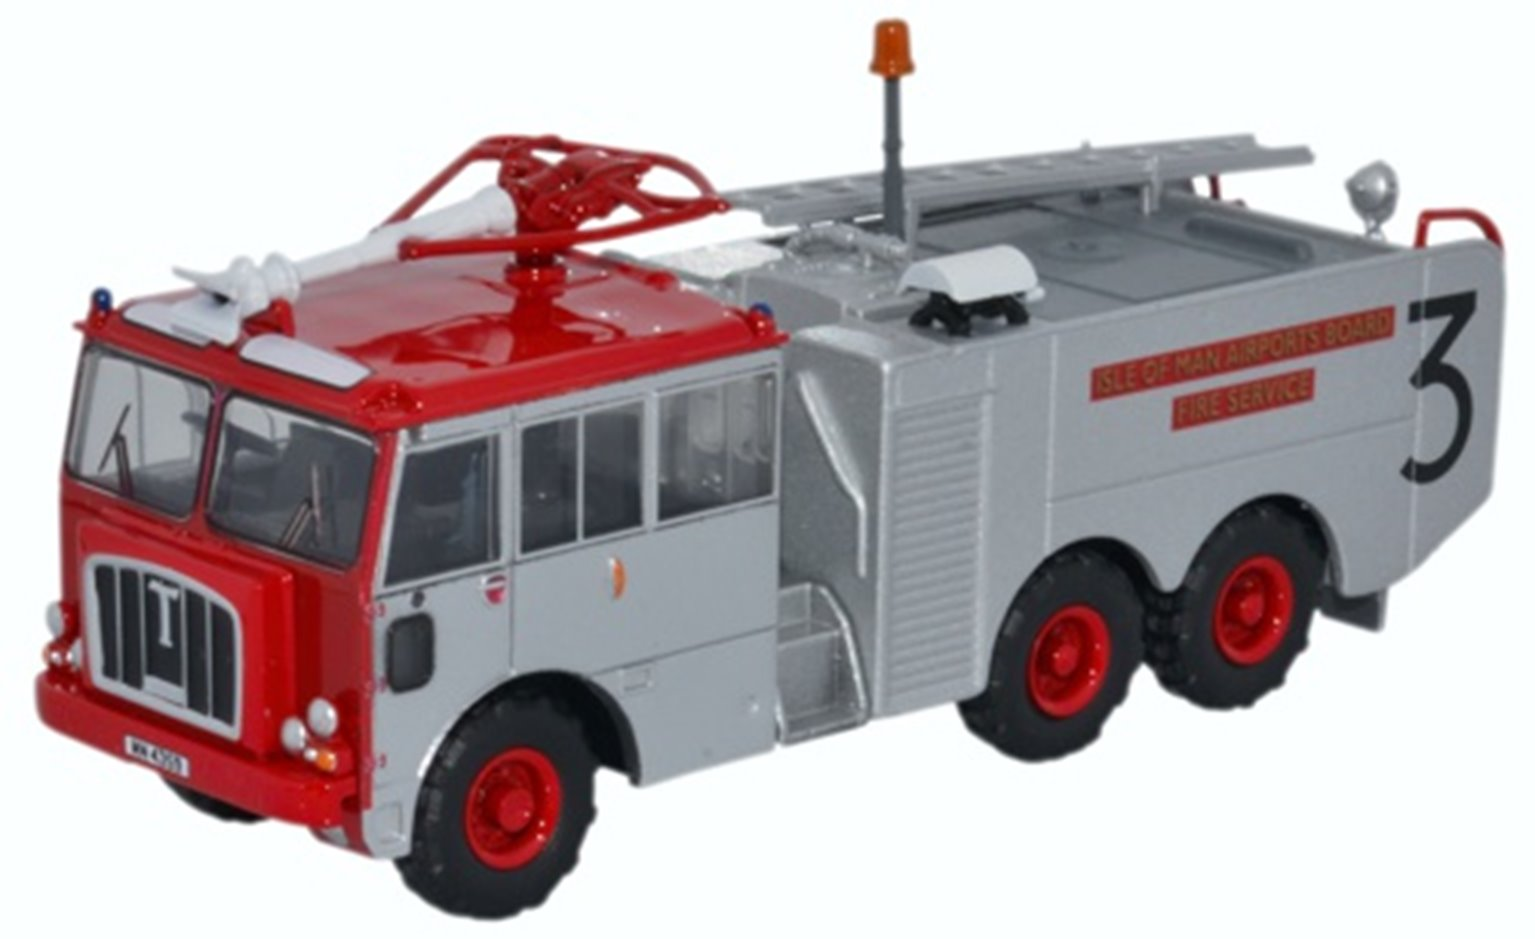 76TN004 Thornycroft Nubian Isle of Man Airports Board Fire Service